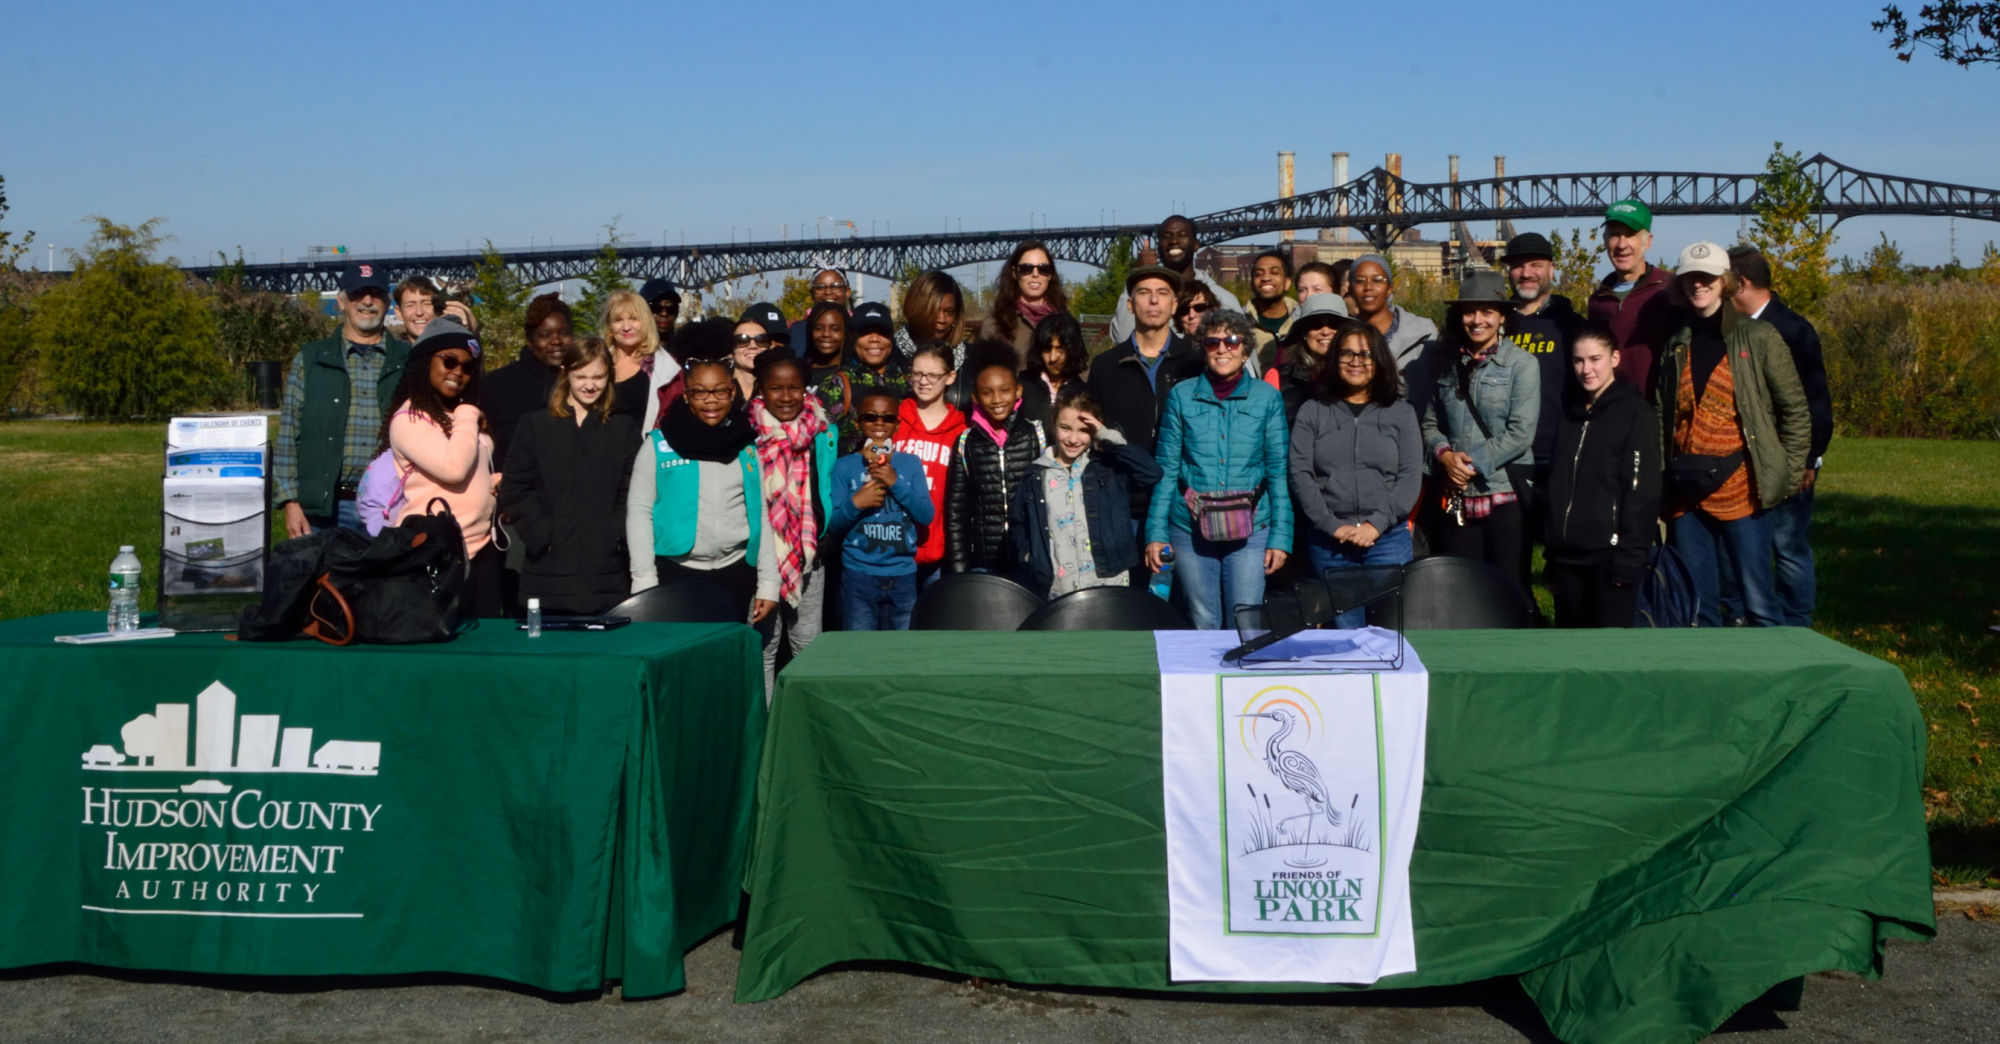 The girls scouts came to explore and learn about the WetLands and Lincoln Park West history